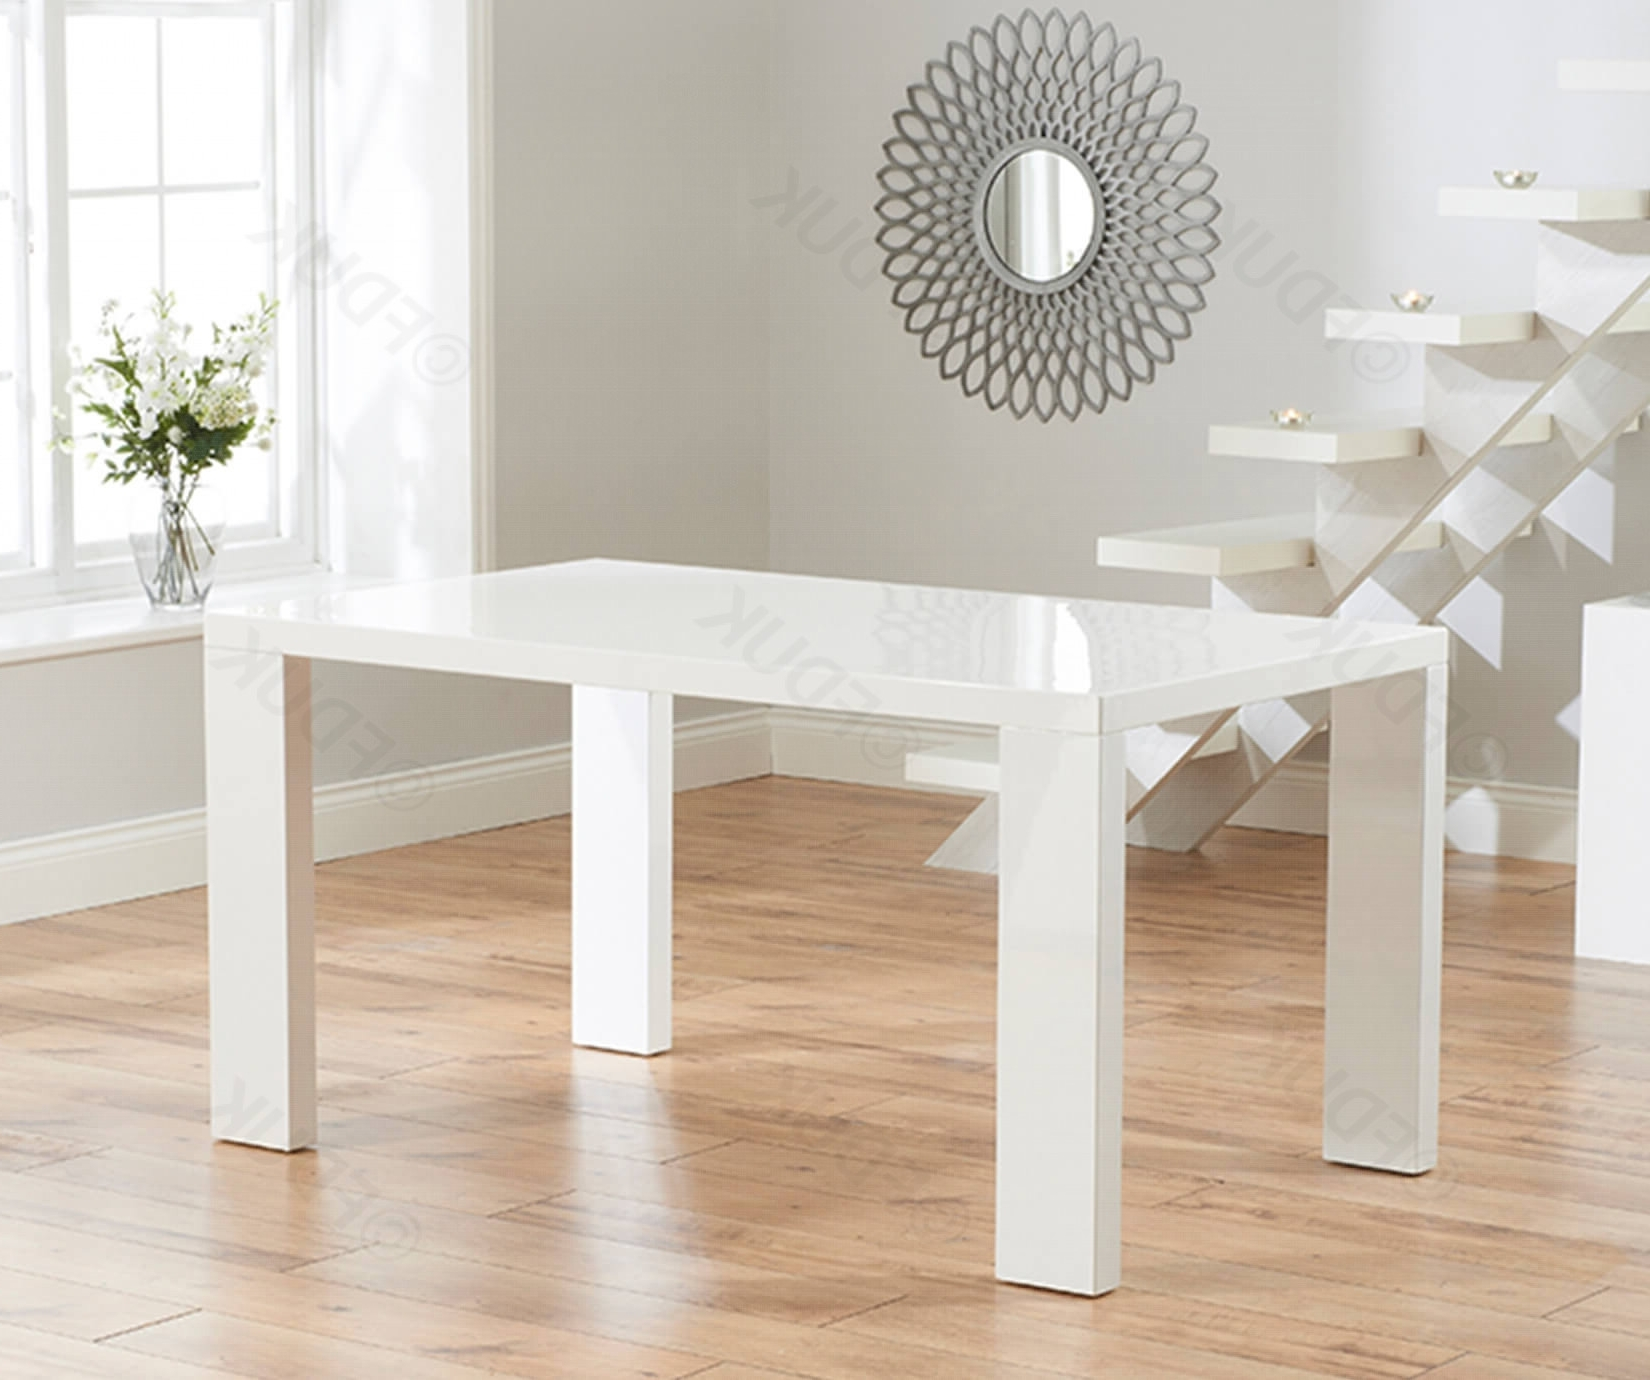 White Gloss Dining Room Furniture Throughout Most Recent Mark Harris Metz 150Cm White High Gloss Dining Table Only Fduk Best Price  Guarantee We Will Beat Our Competitors Price! Give Our Sales Team A Call On (View 2 of 25)